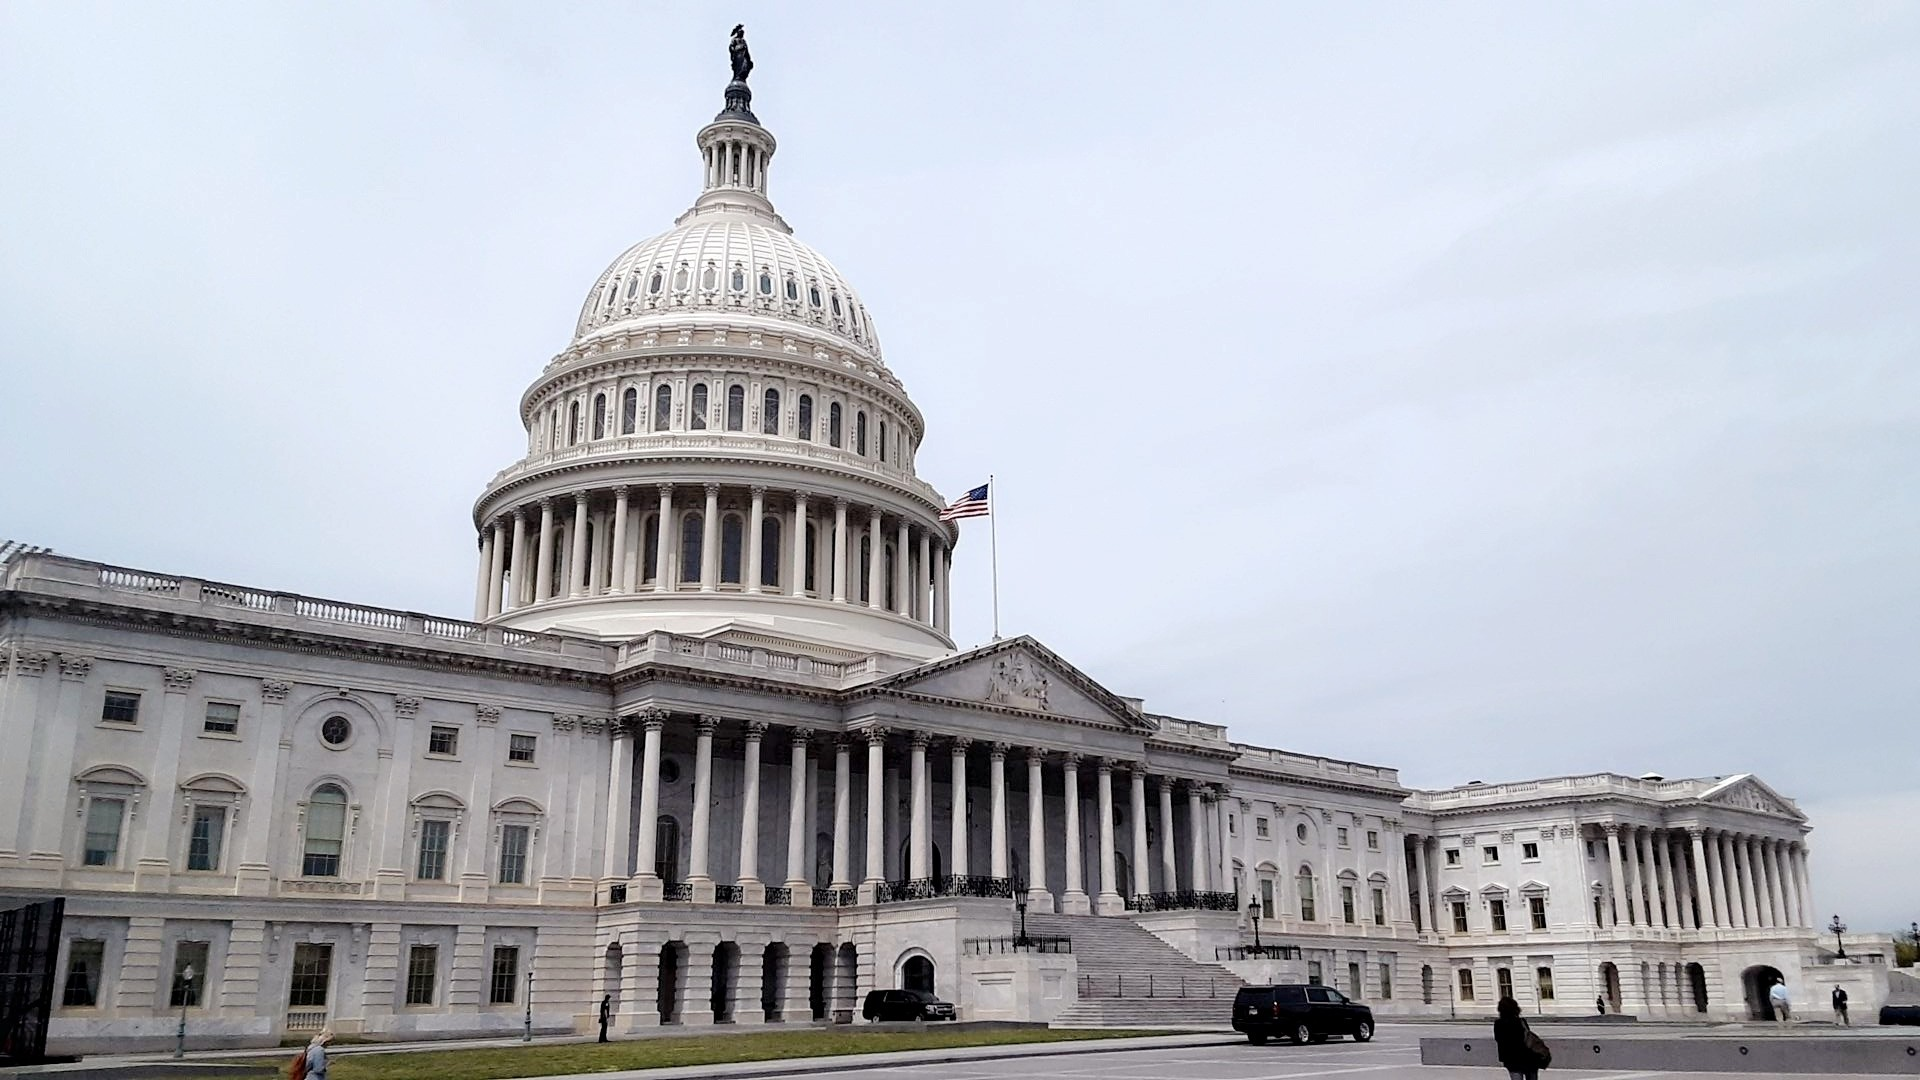 US Capitol, home of Congress